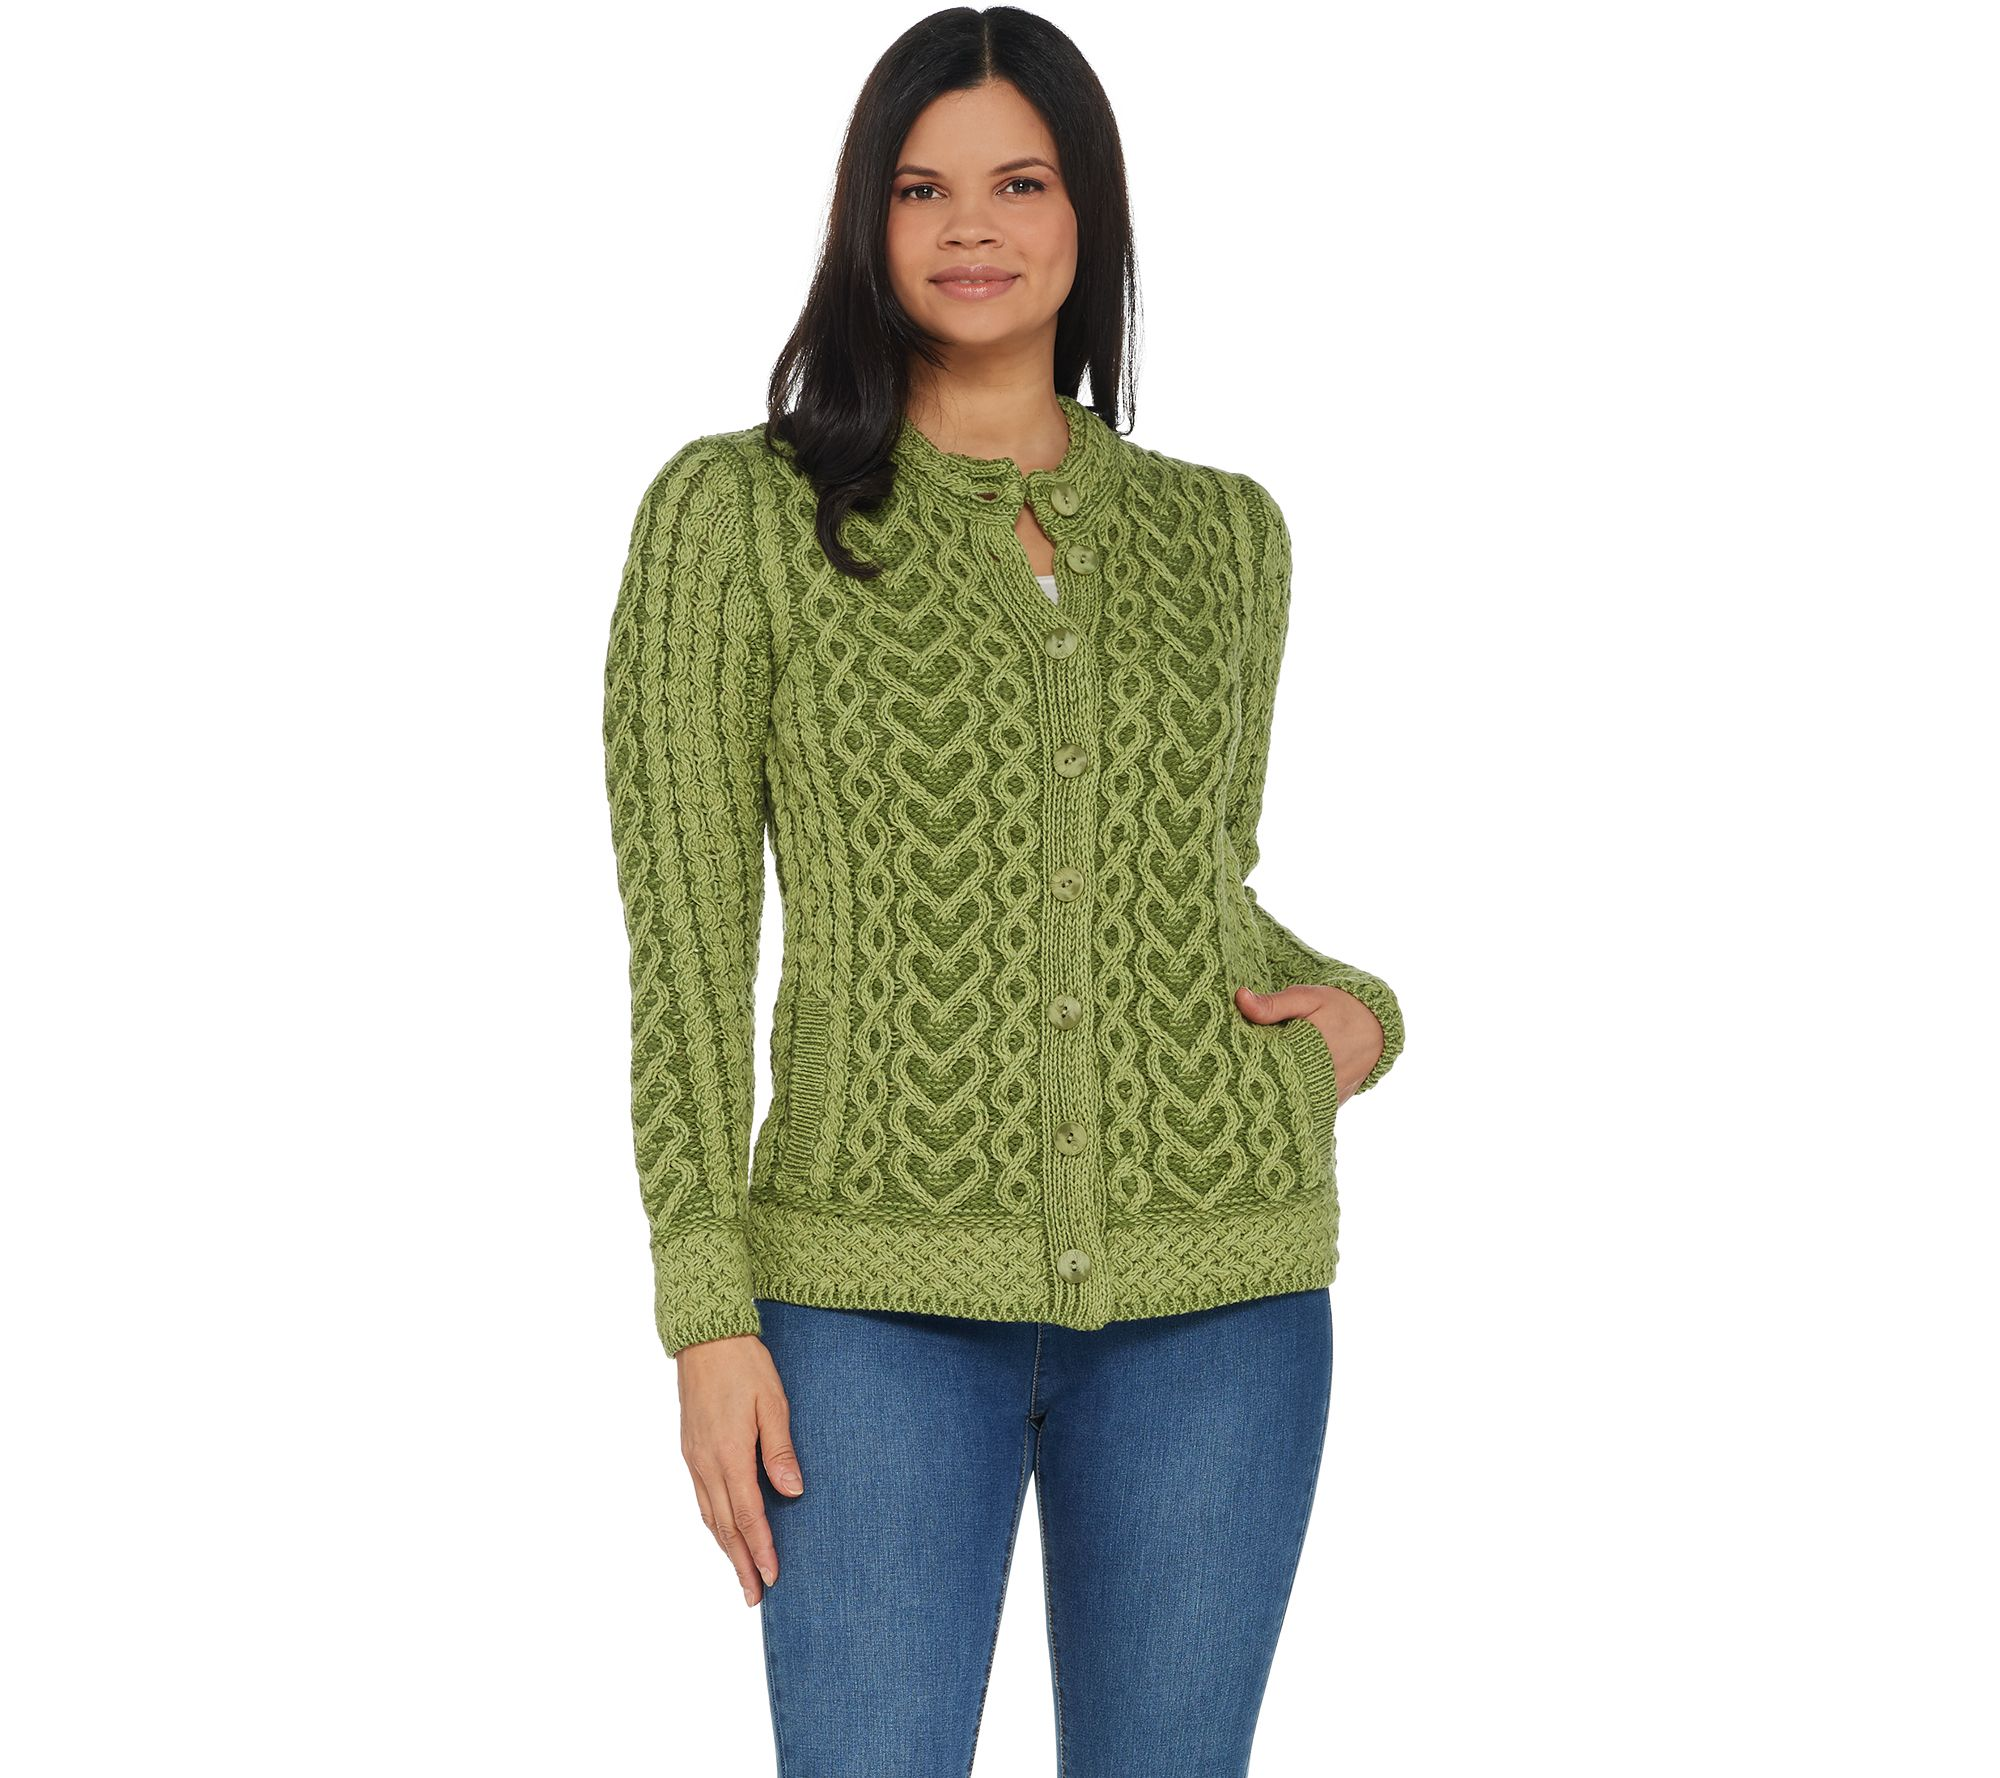 951309aa2e756e Aran Craft Hearts   Kisses Button Front Sweater Cardigan - Page 1 ...